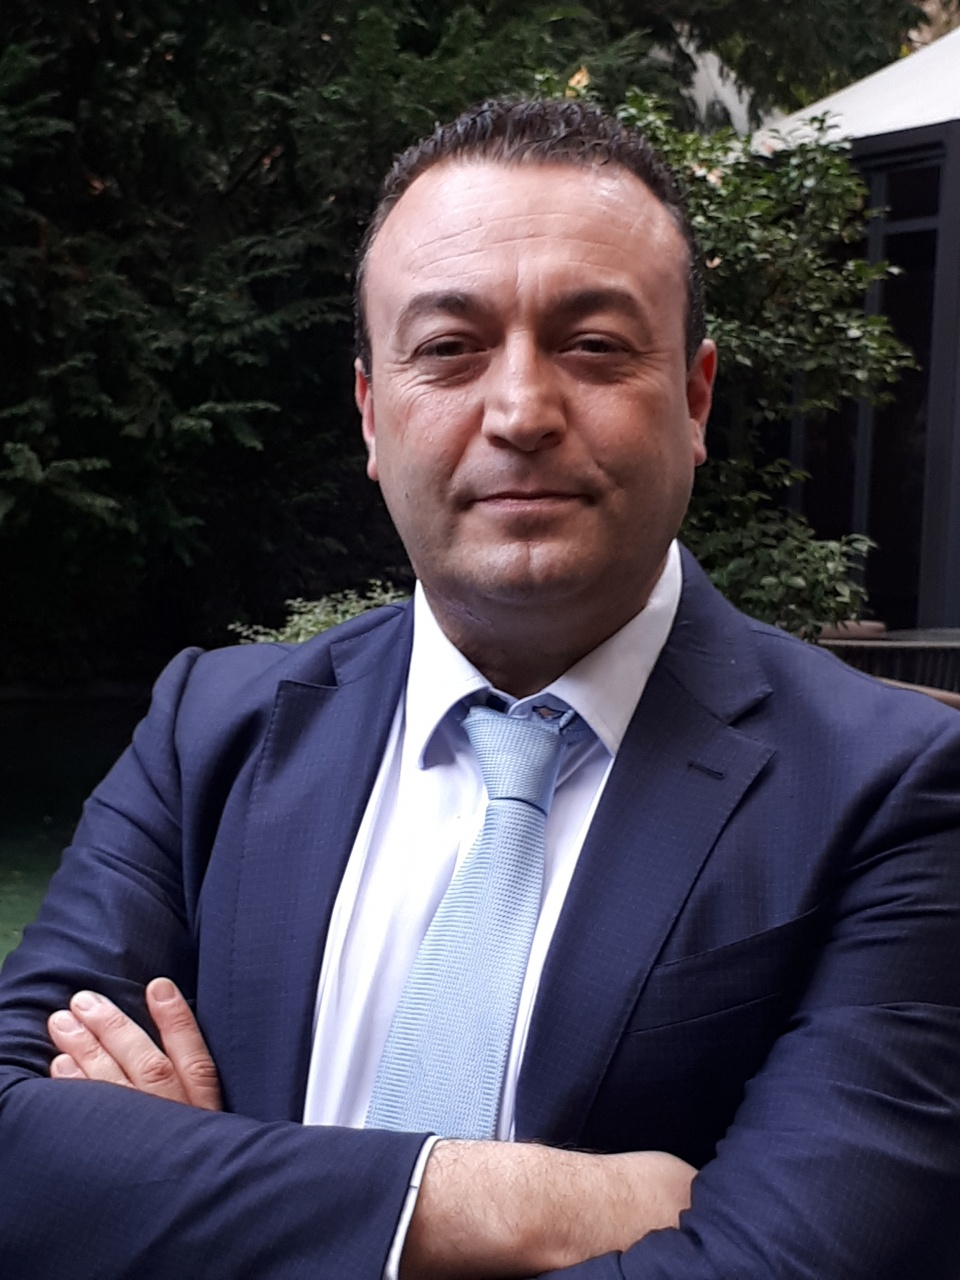 ivan de tomasi country manager italia (3)